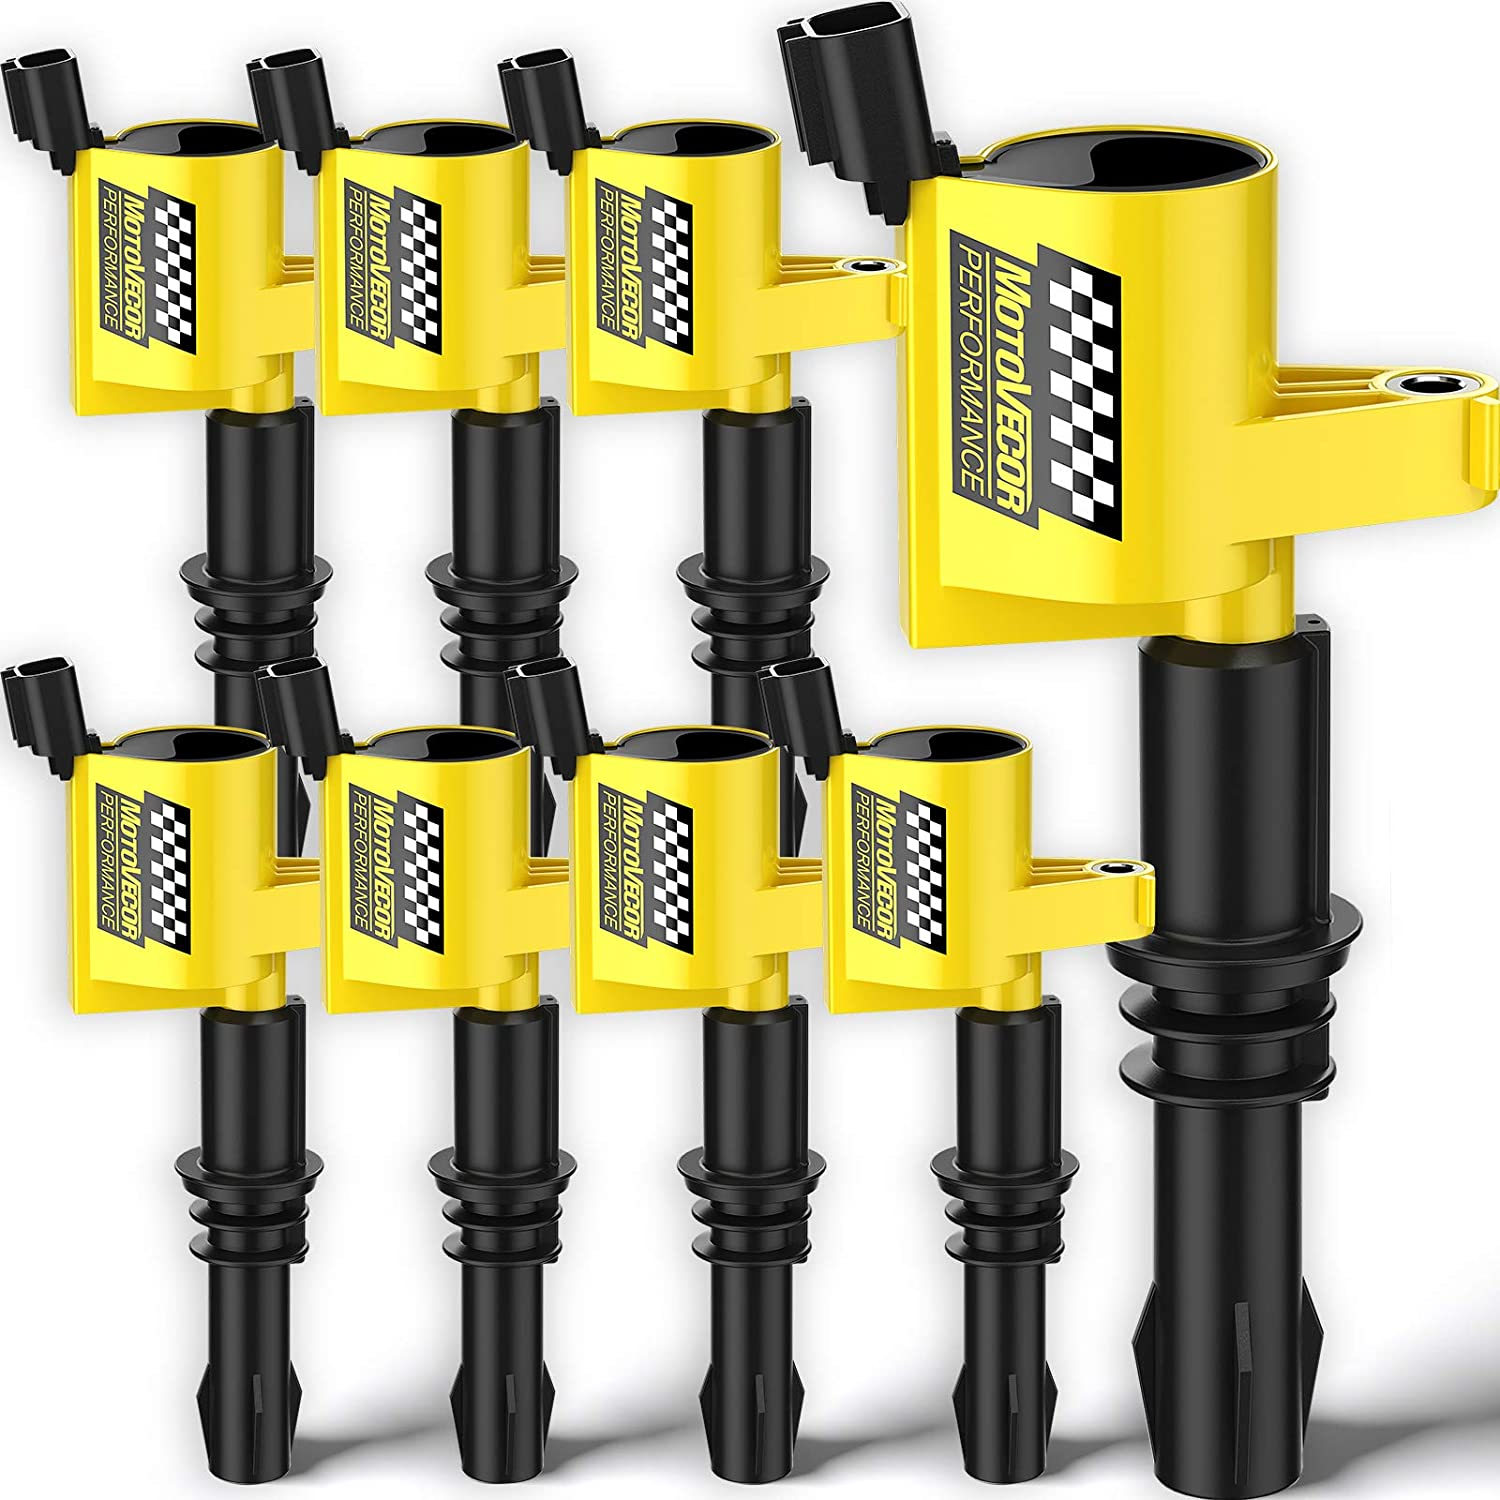 Ignition Coil Pack of 8 DG511 67% OFF fixed Online limited product price Up Energy with Compatible 15% More